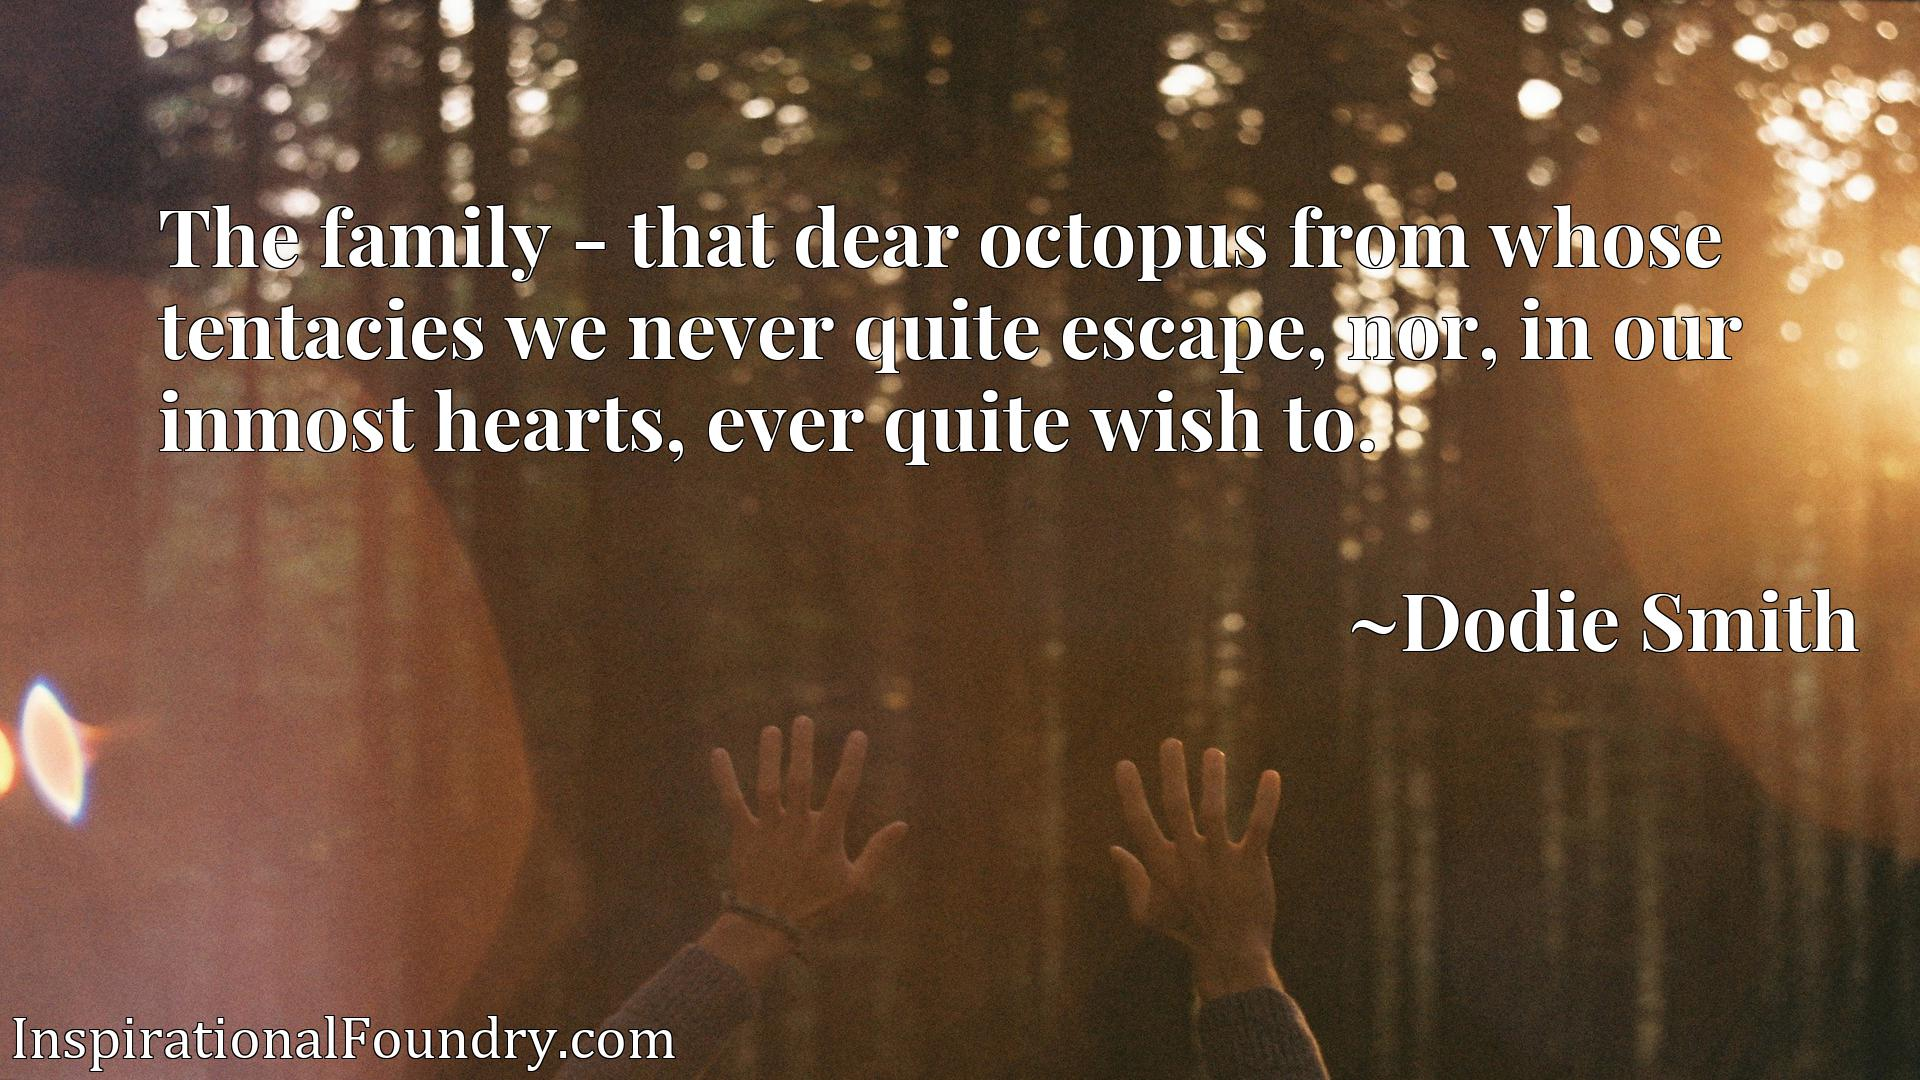 The family - that dear octopus from whose tentacies we never quite escape, nor, in our inmost hearts, ever quite wish to.